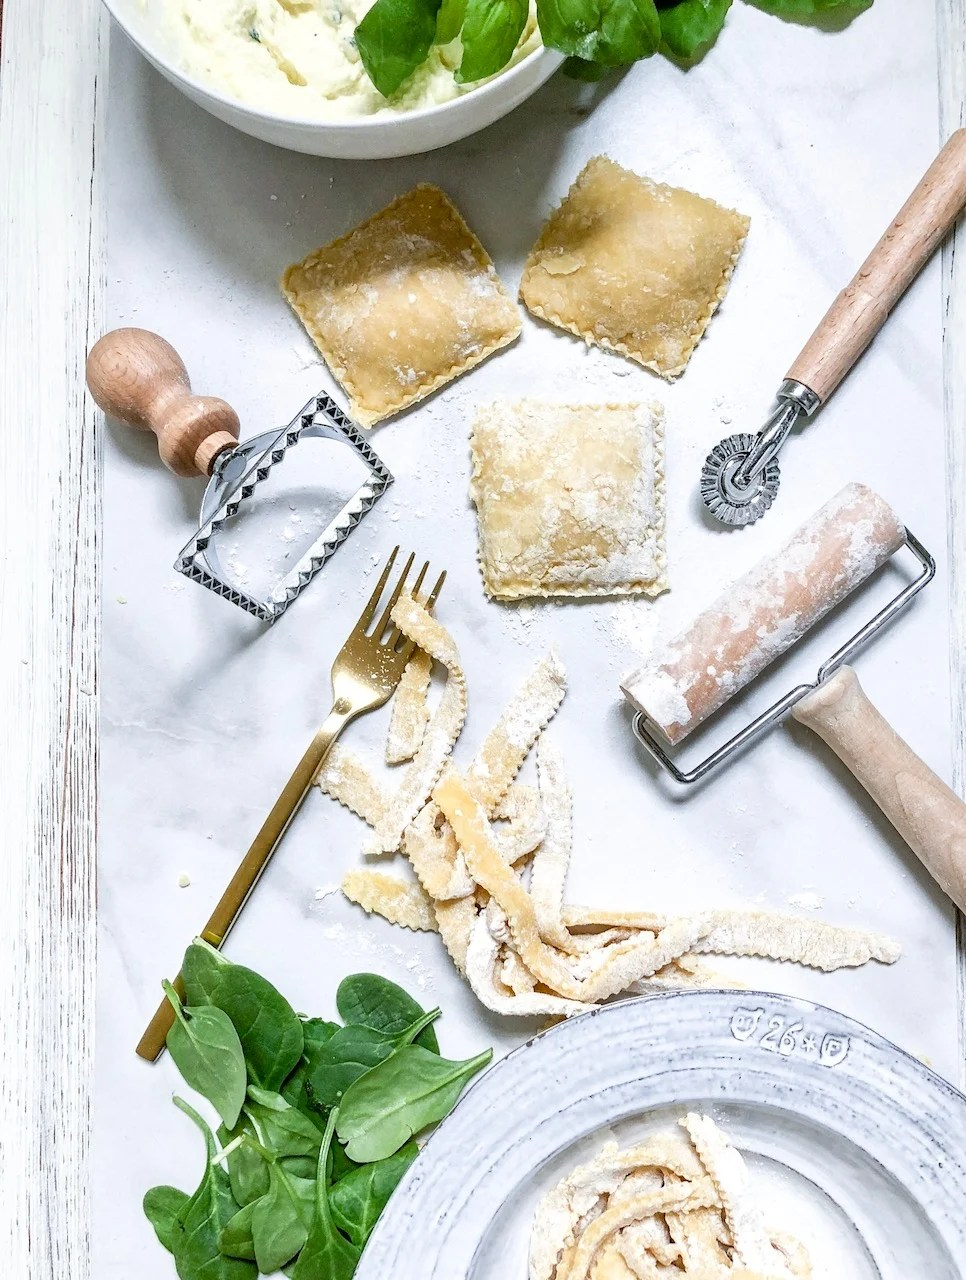 Lifestyle Blogger Chocolate & Lace shares her recipe for handmade Spinach + Ricotta Ravioli